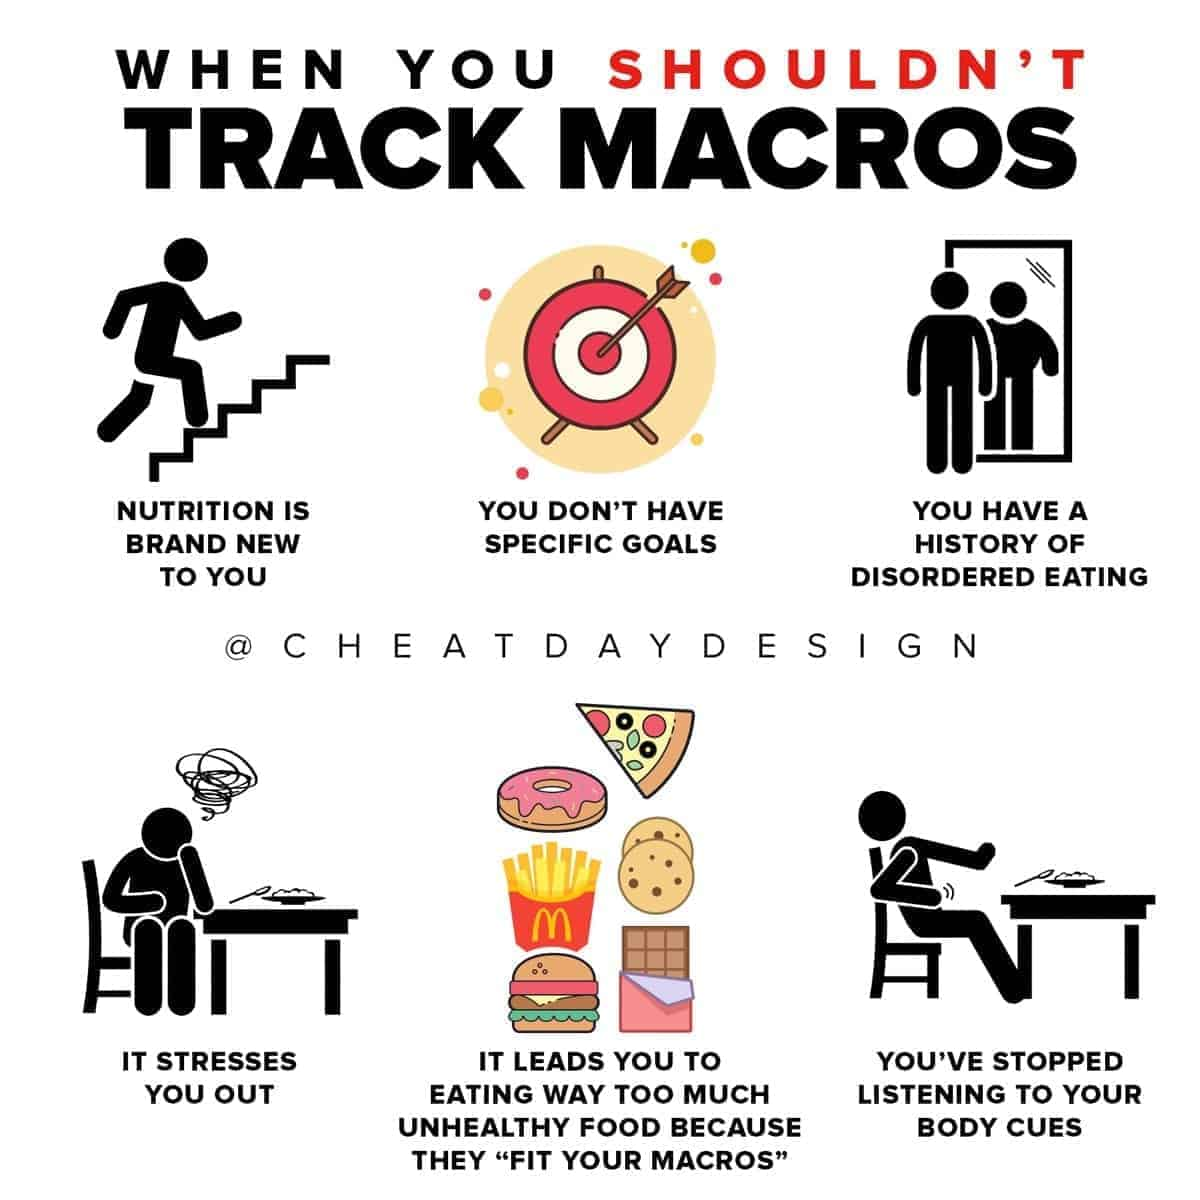 Why you shouldn't track macros